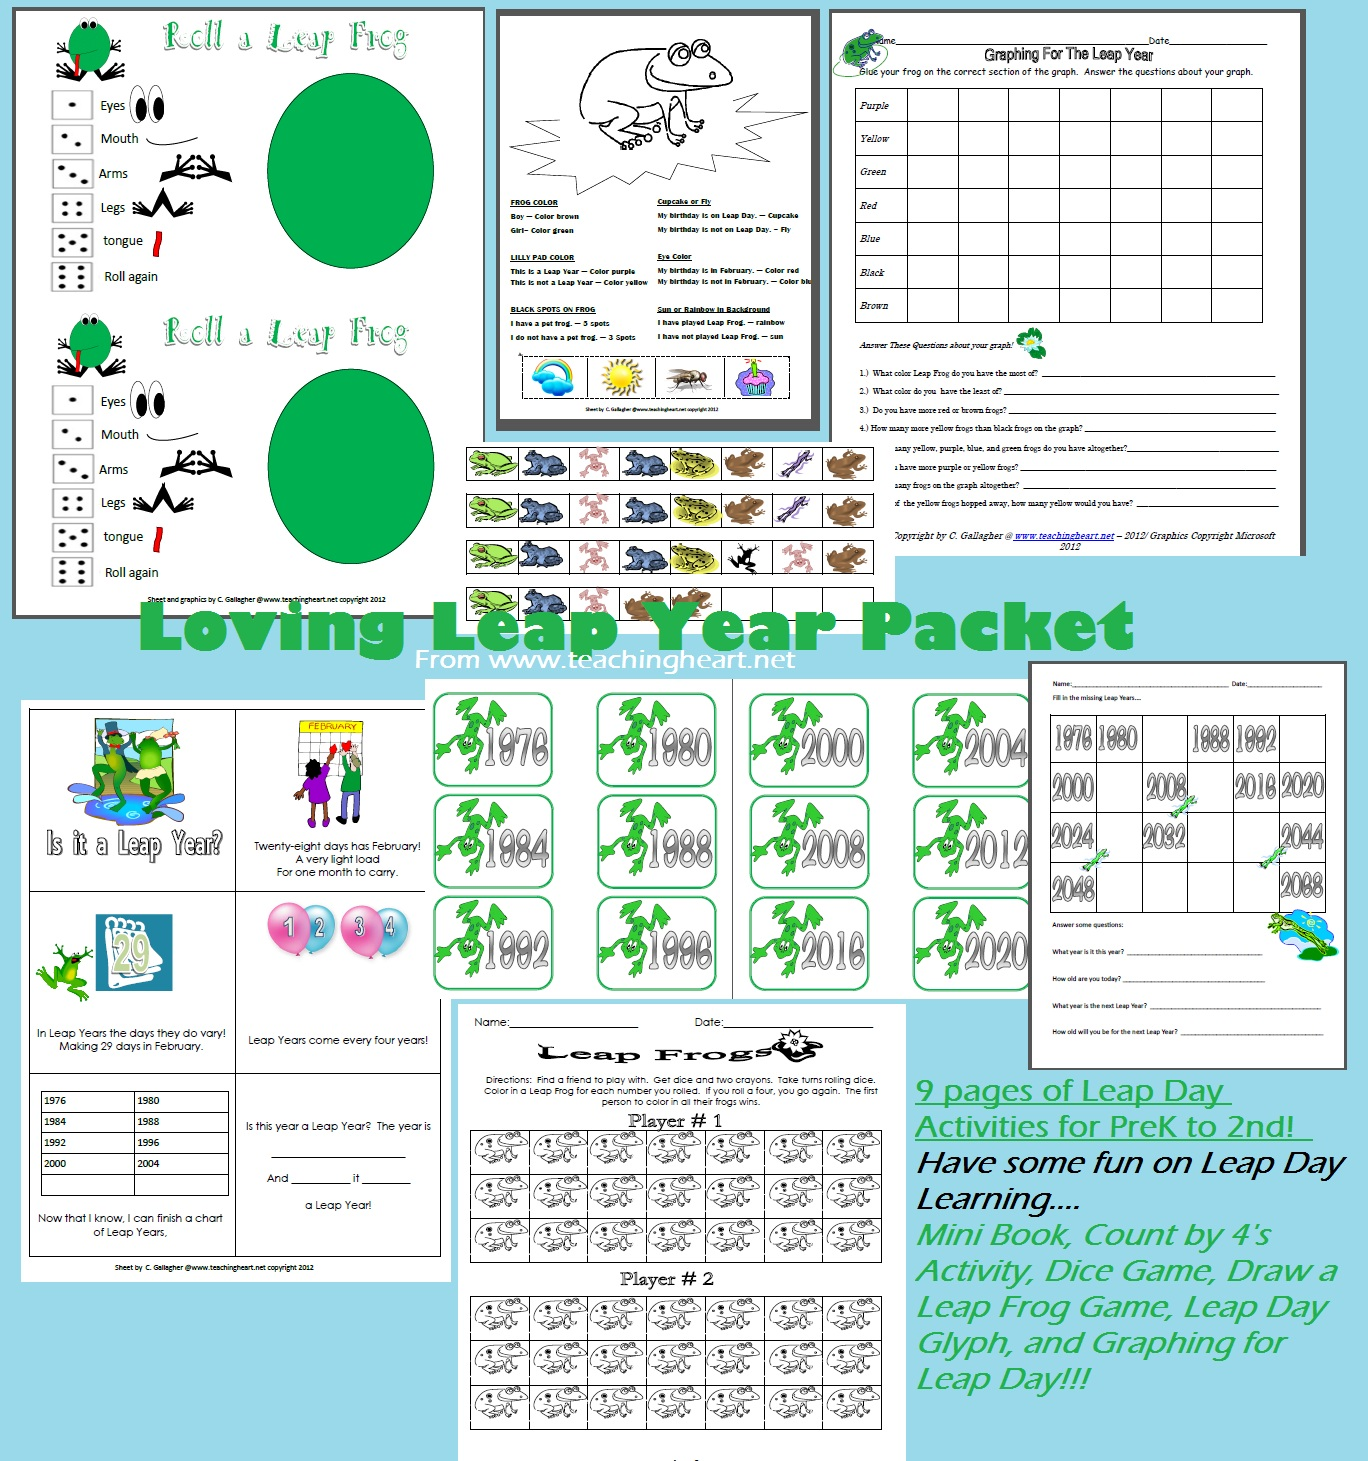 It's just a graphic of Epic Leap Year Printable